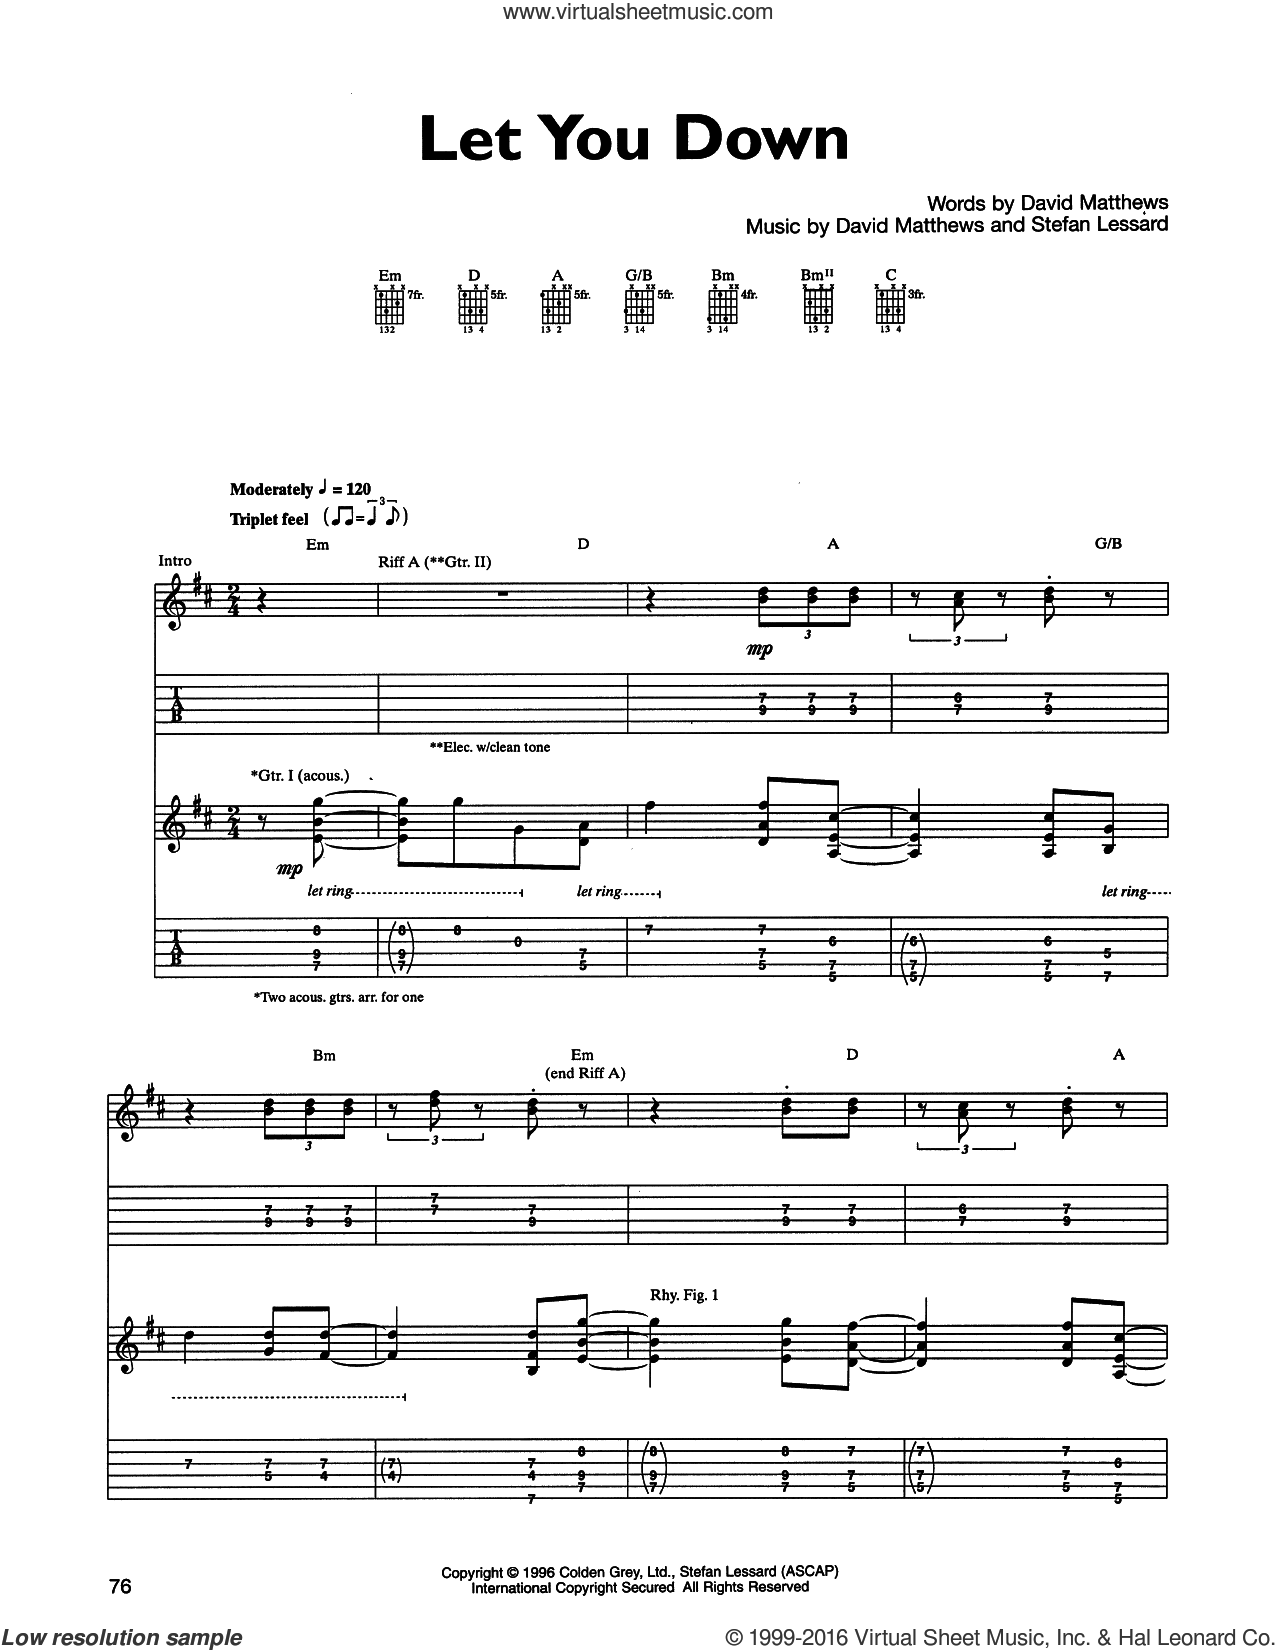 Let You Down sheet music for guitar (tablature) by Stefan Lessard and Dave Matthews Band. Score Image Preview.